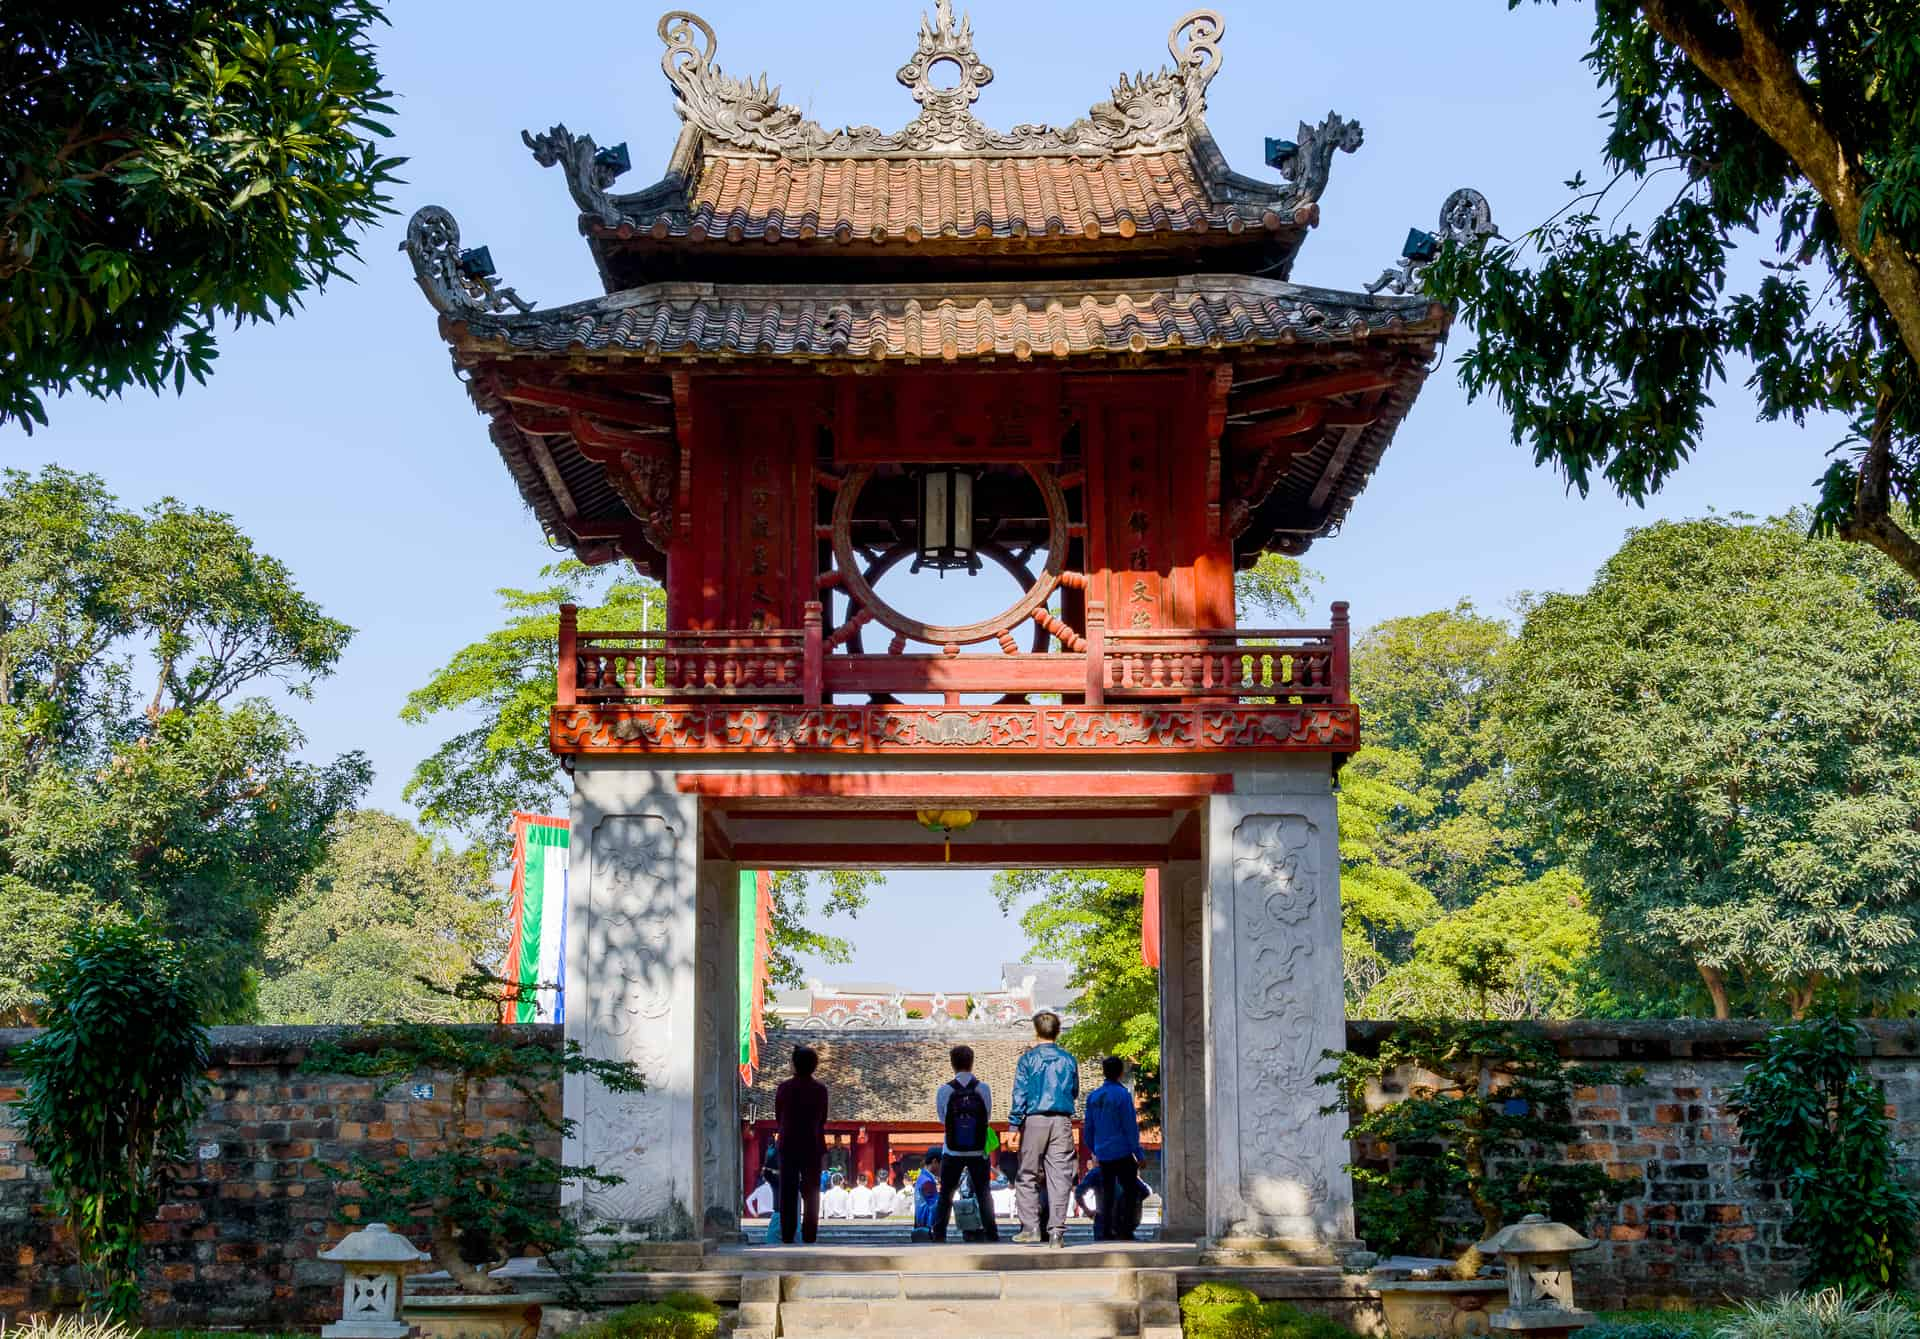 Visit Temple of Literature in t he second afternoon during 2 days in Hanoi